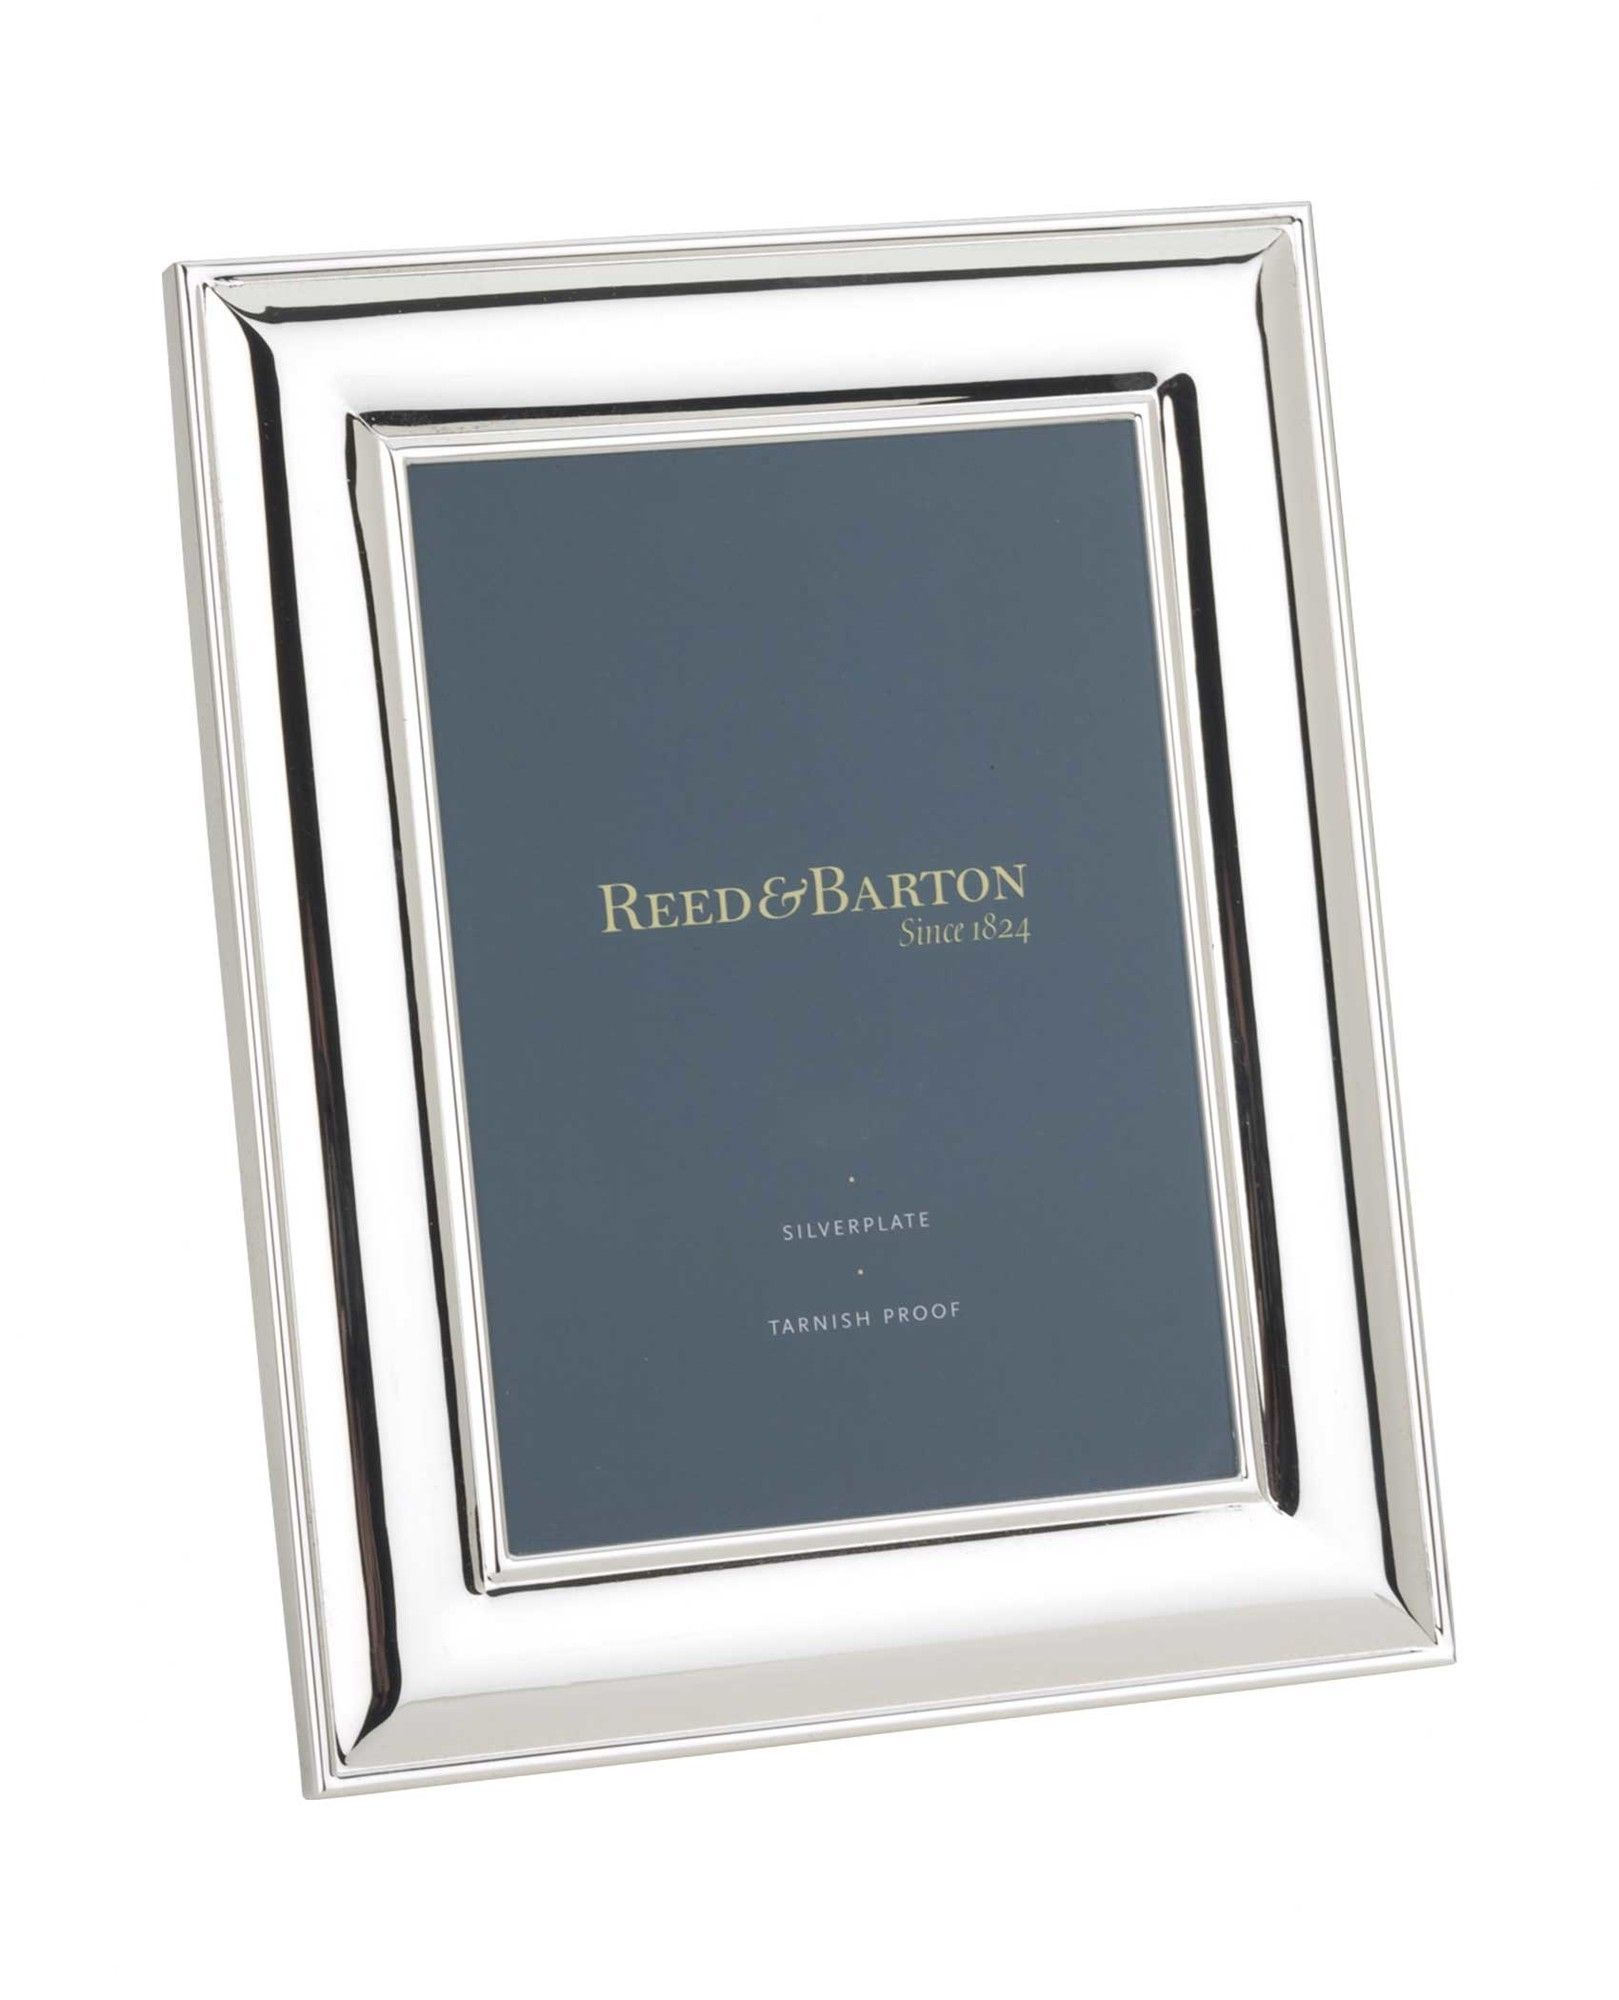 Newton Bevel 5 X 7 Silverplated Picture Frame Picture Frames Reed Barton Picture Frame Sizes